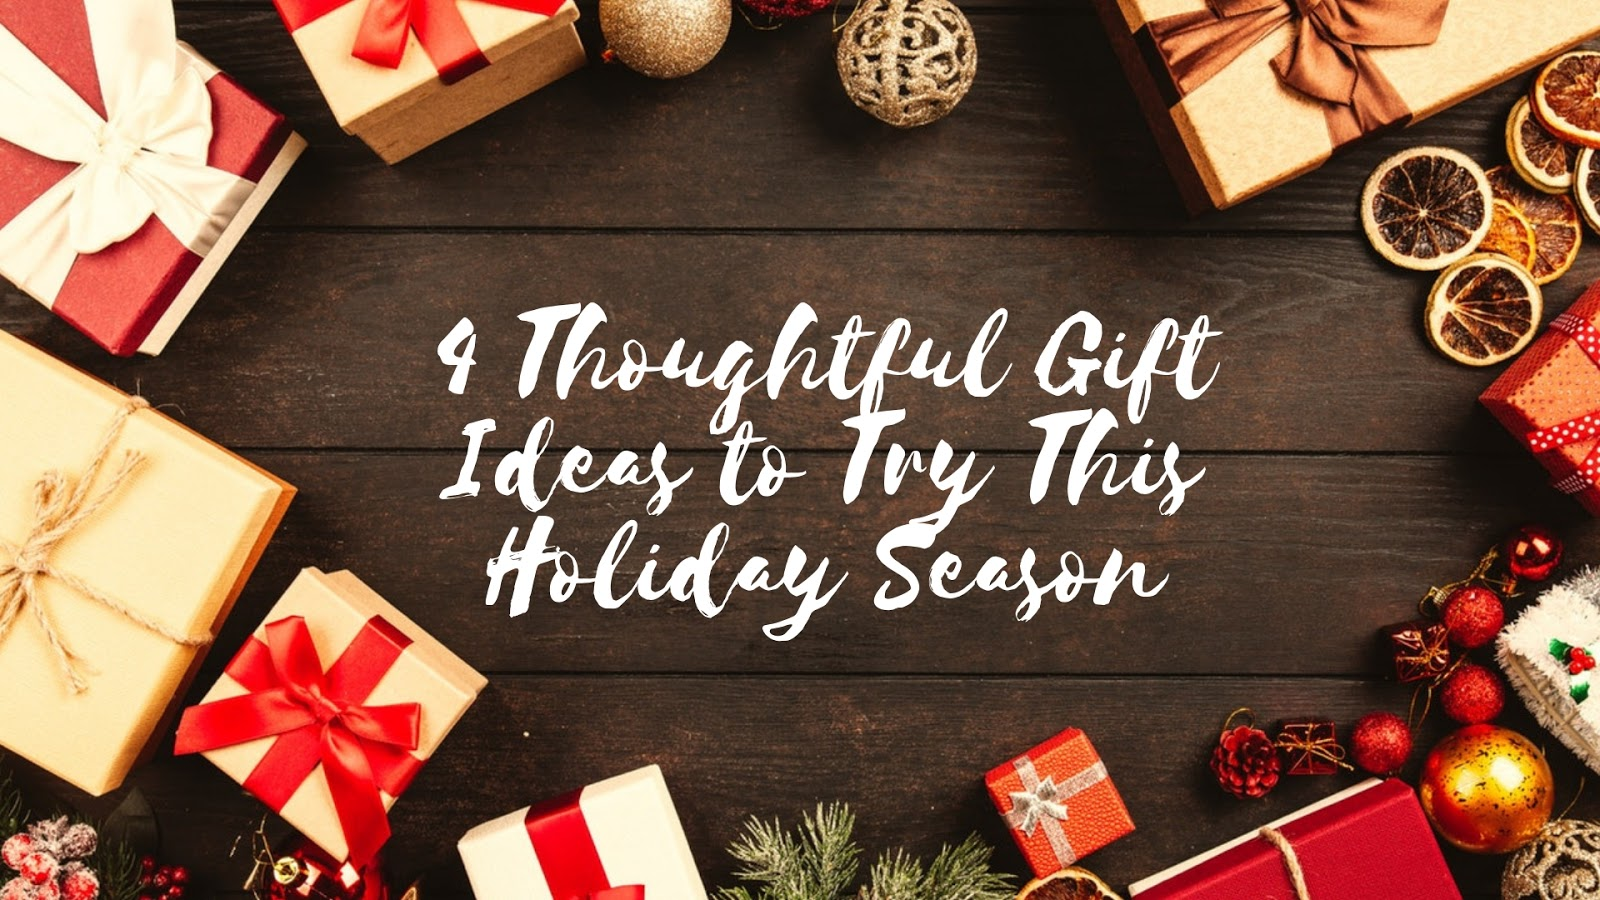 4 Thoughtful Gift Ideas to Try This Holiday Season - Rants and Raves ...